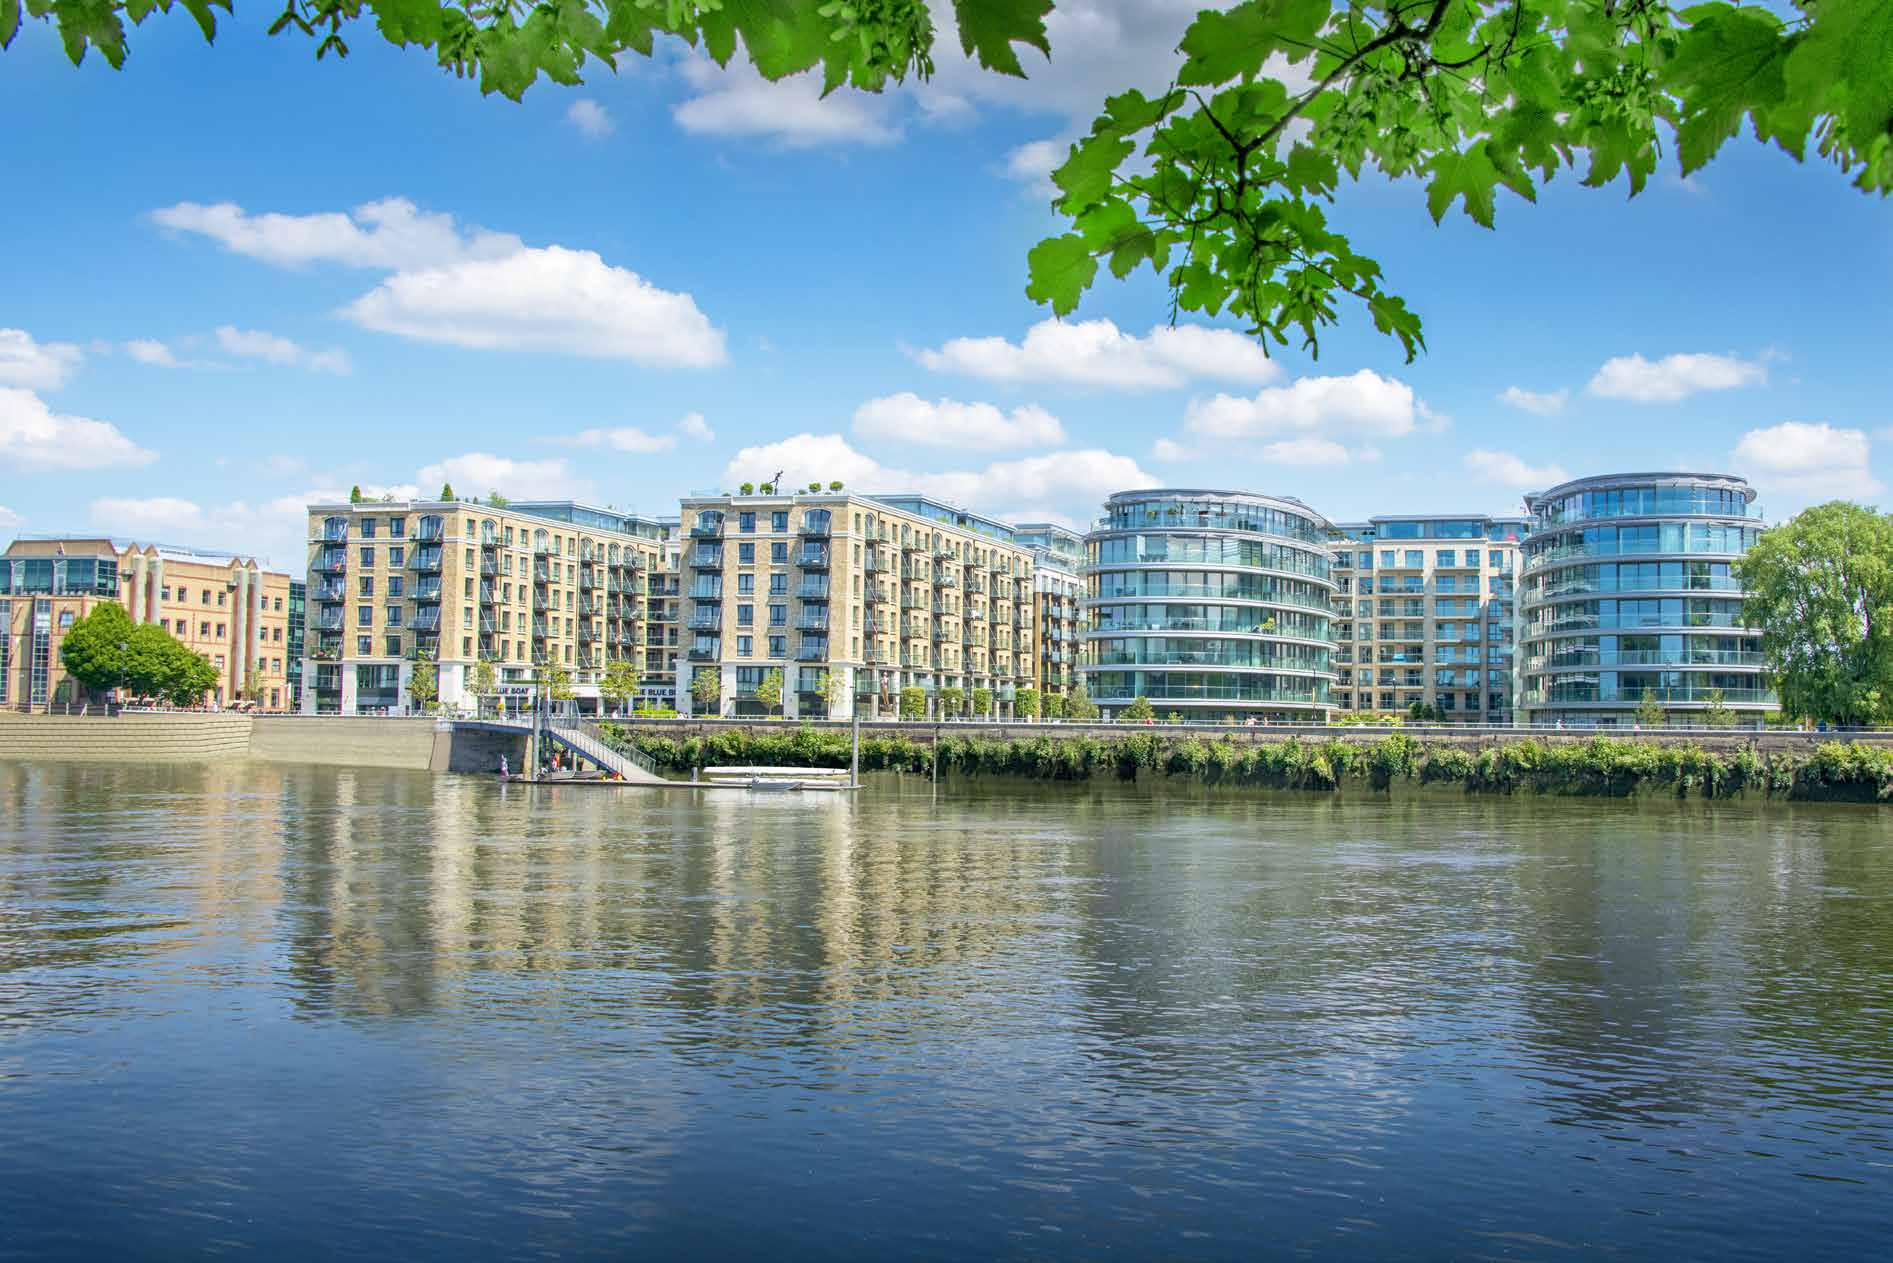 Fulham apartments in London